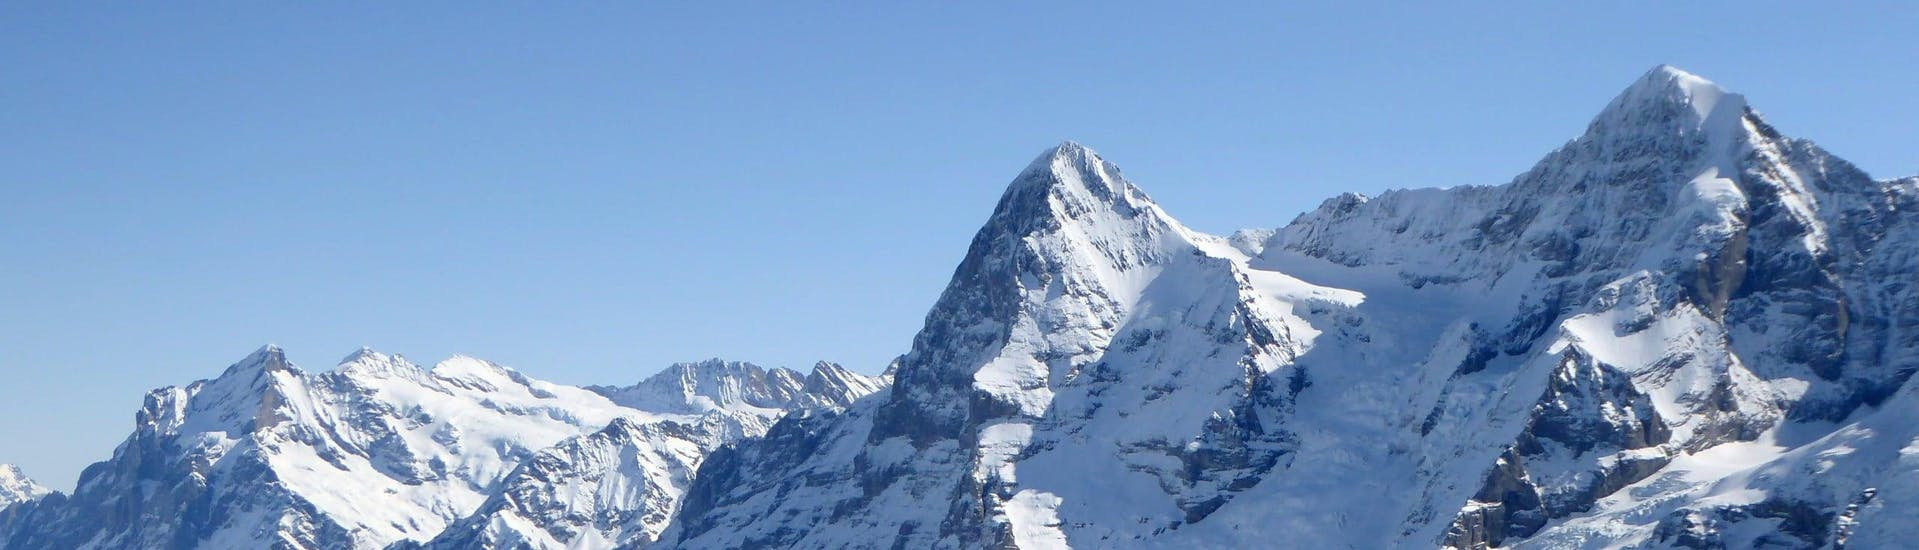 View over the sunny mountain landscape while learning to ski with the ski schools in Wengen.